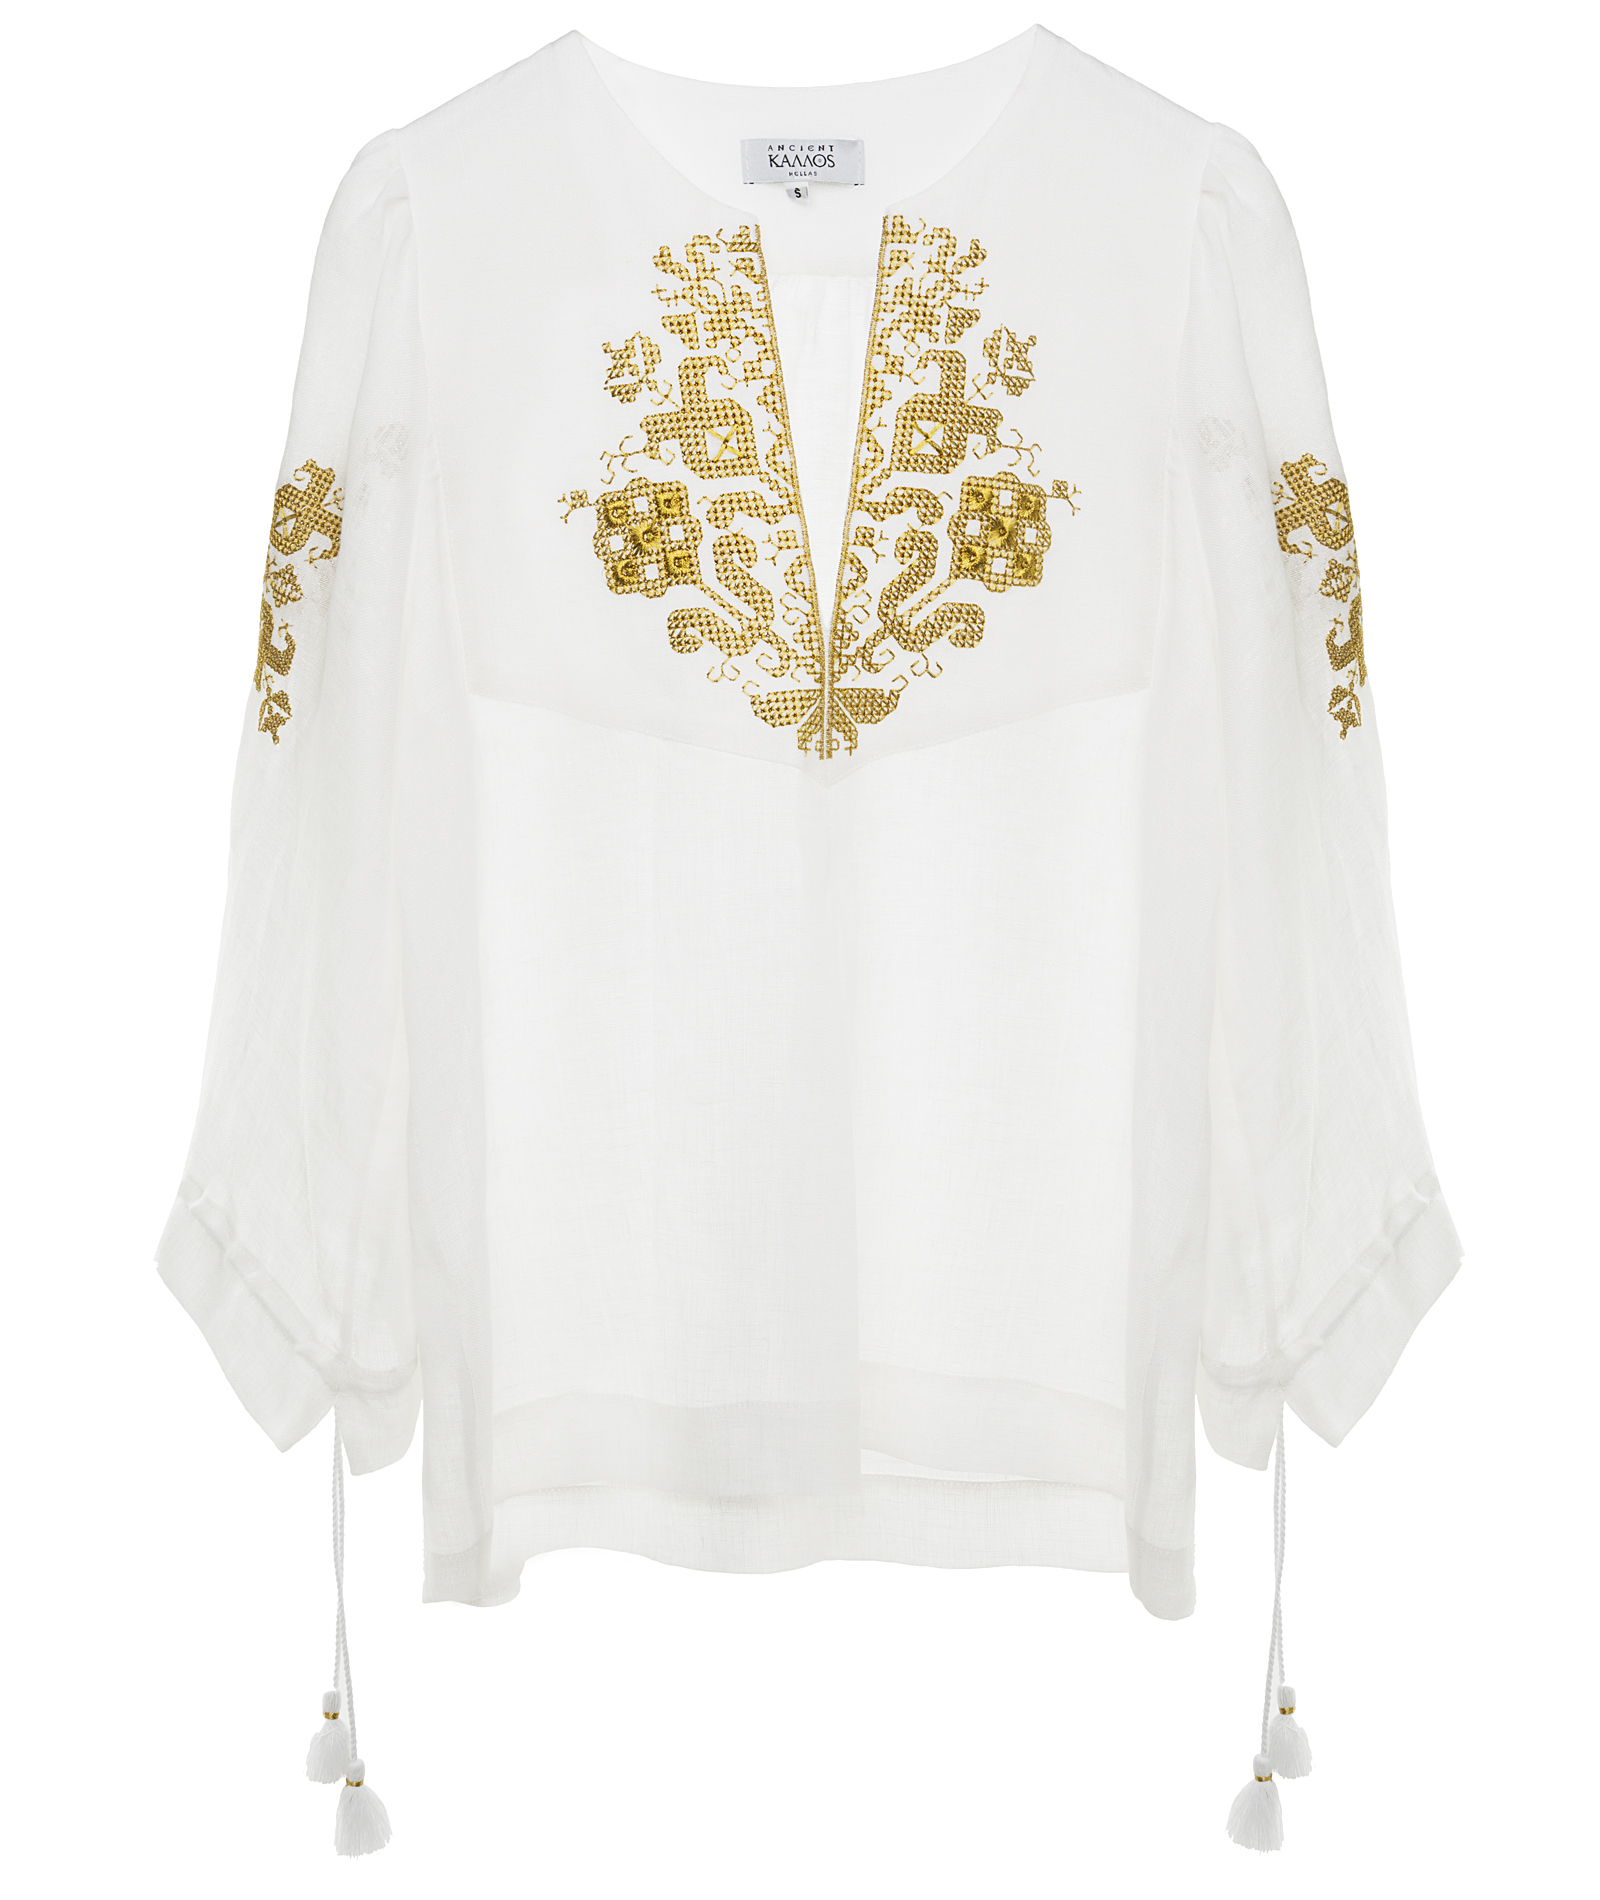 3.Persephone embroidered blouse